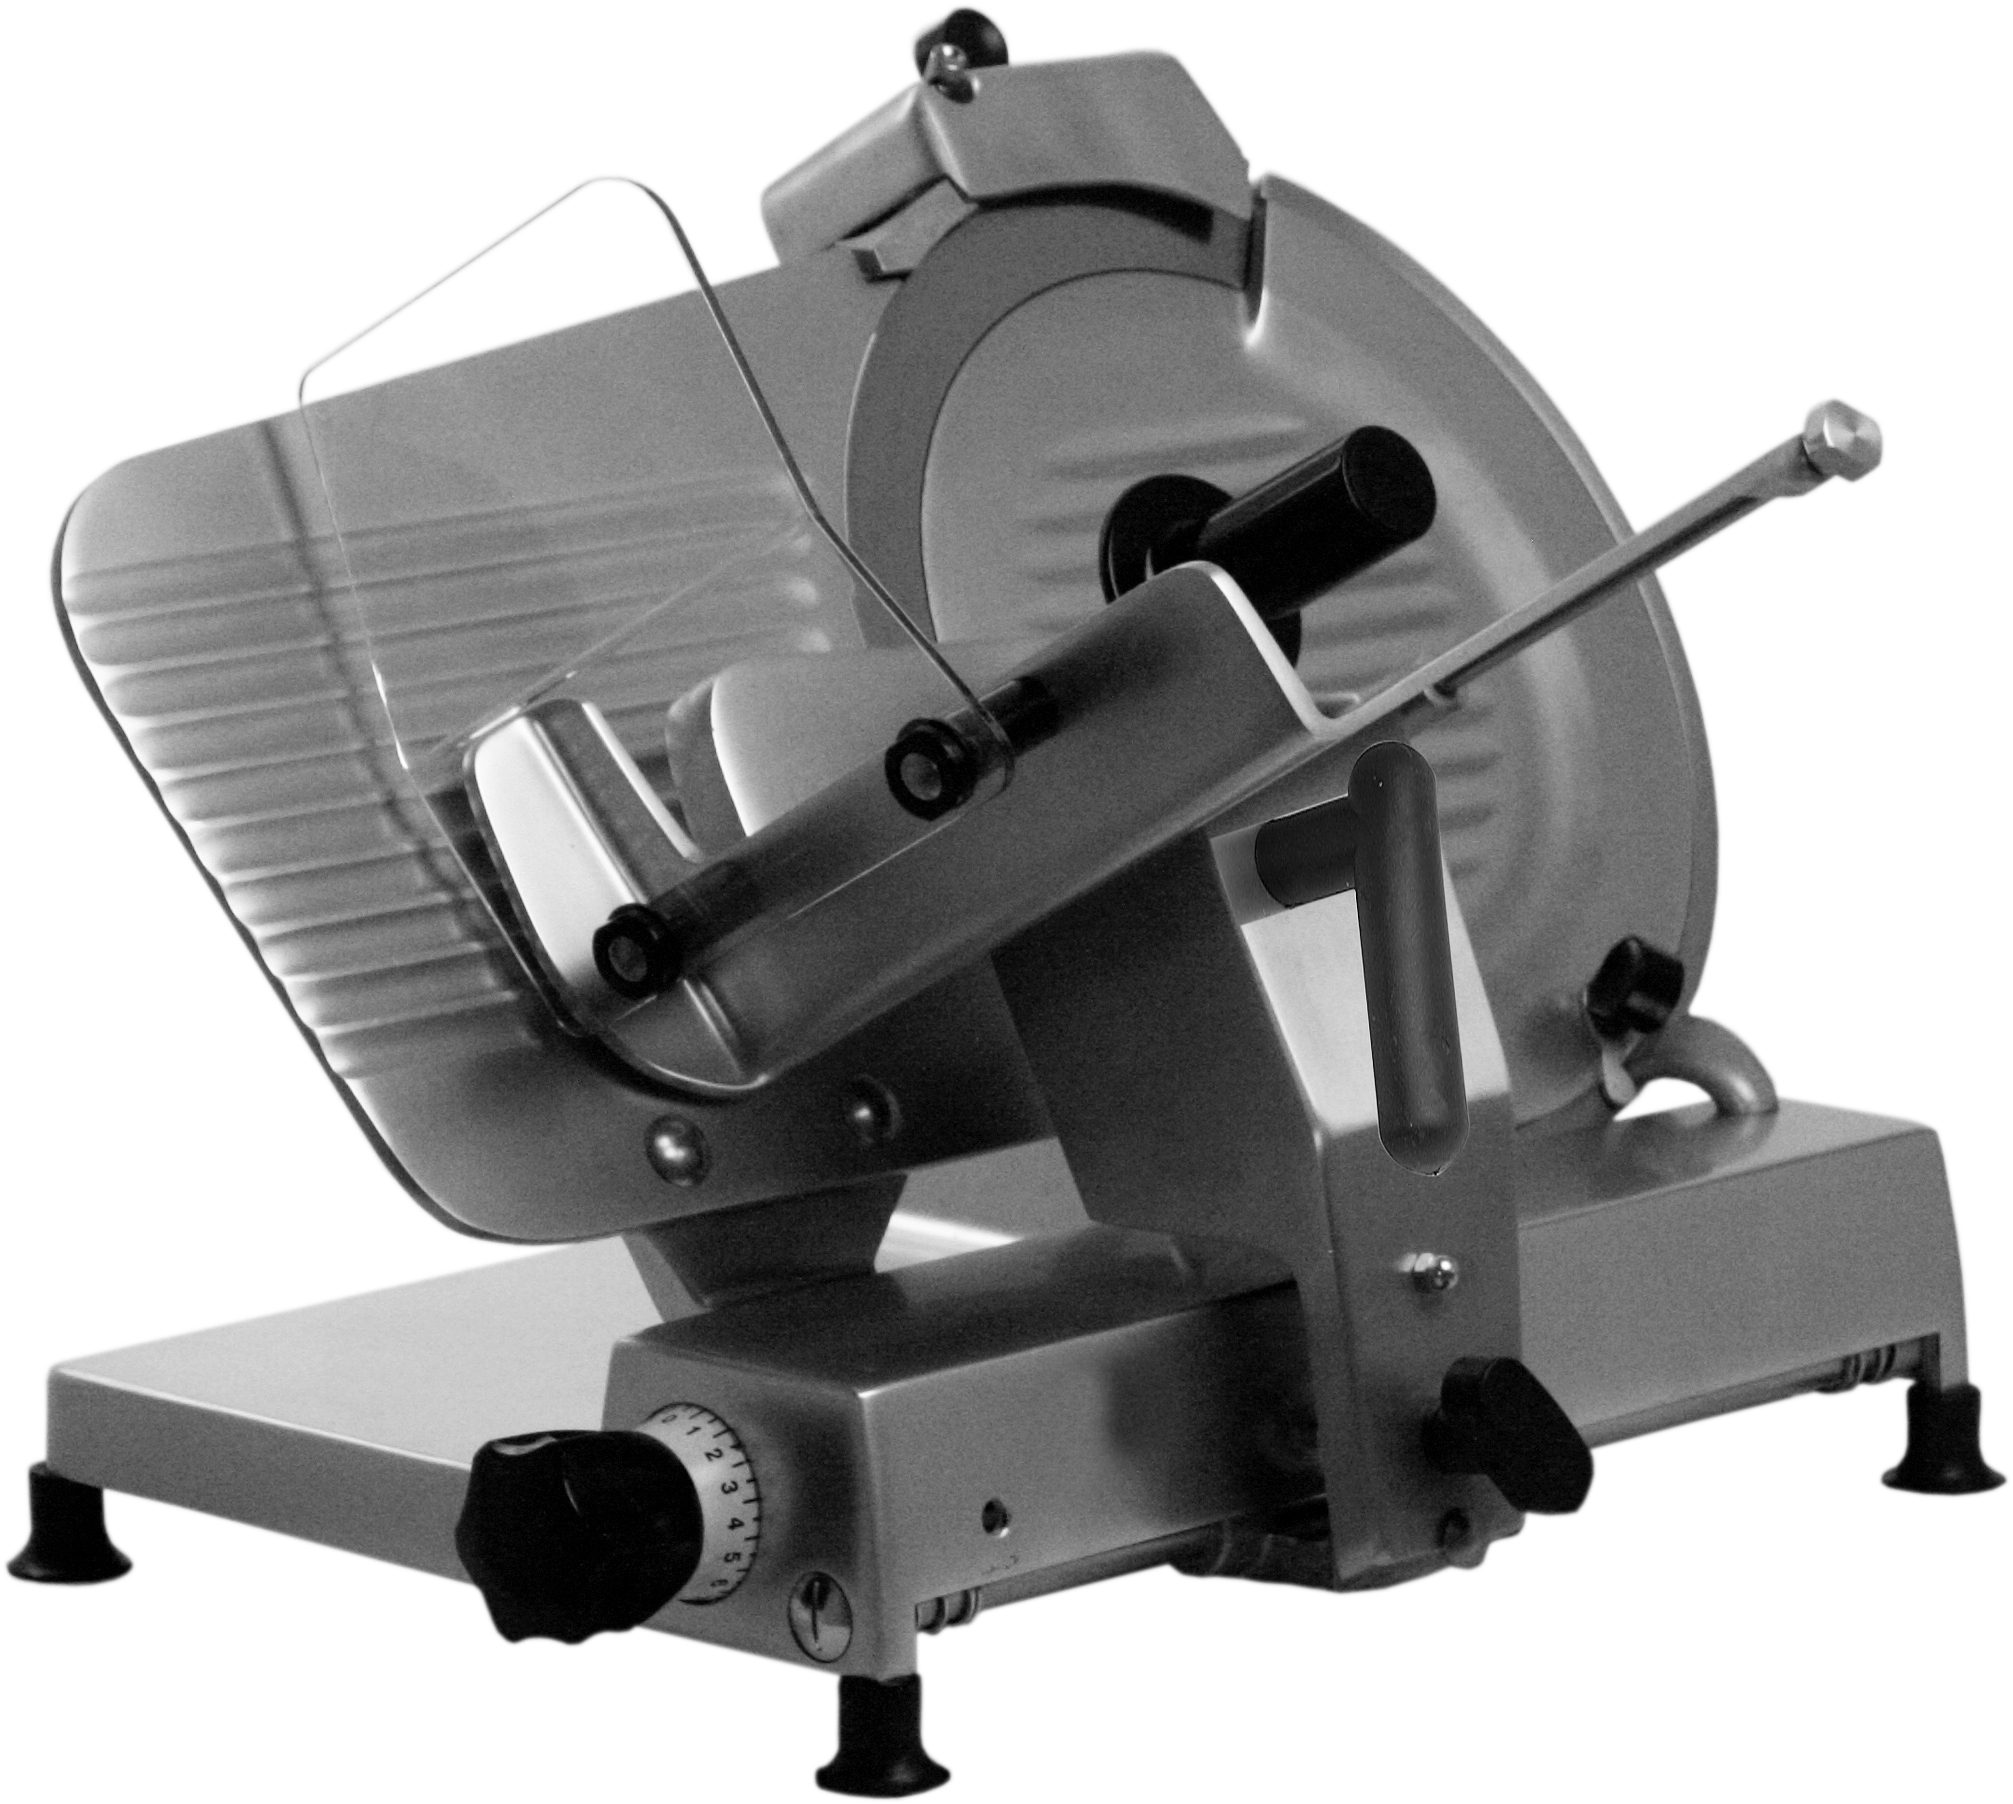 OMAOG Series Meat Slicers